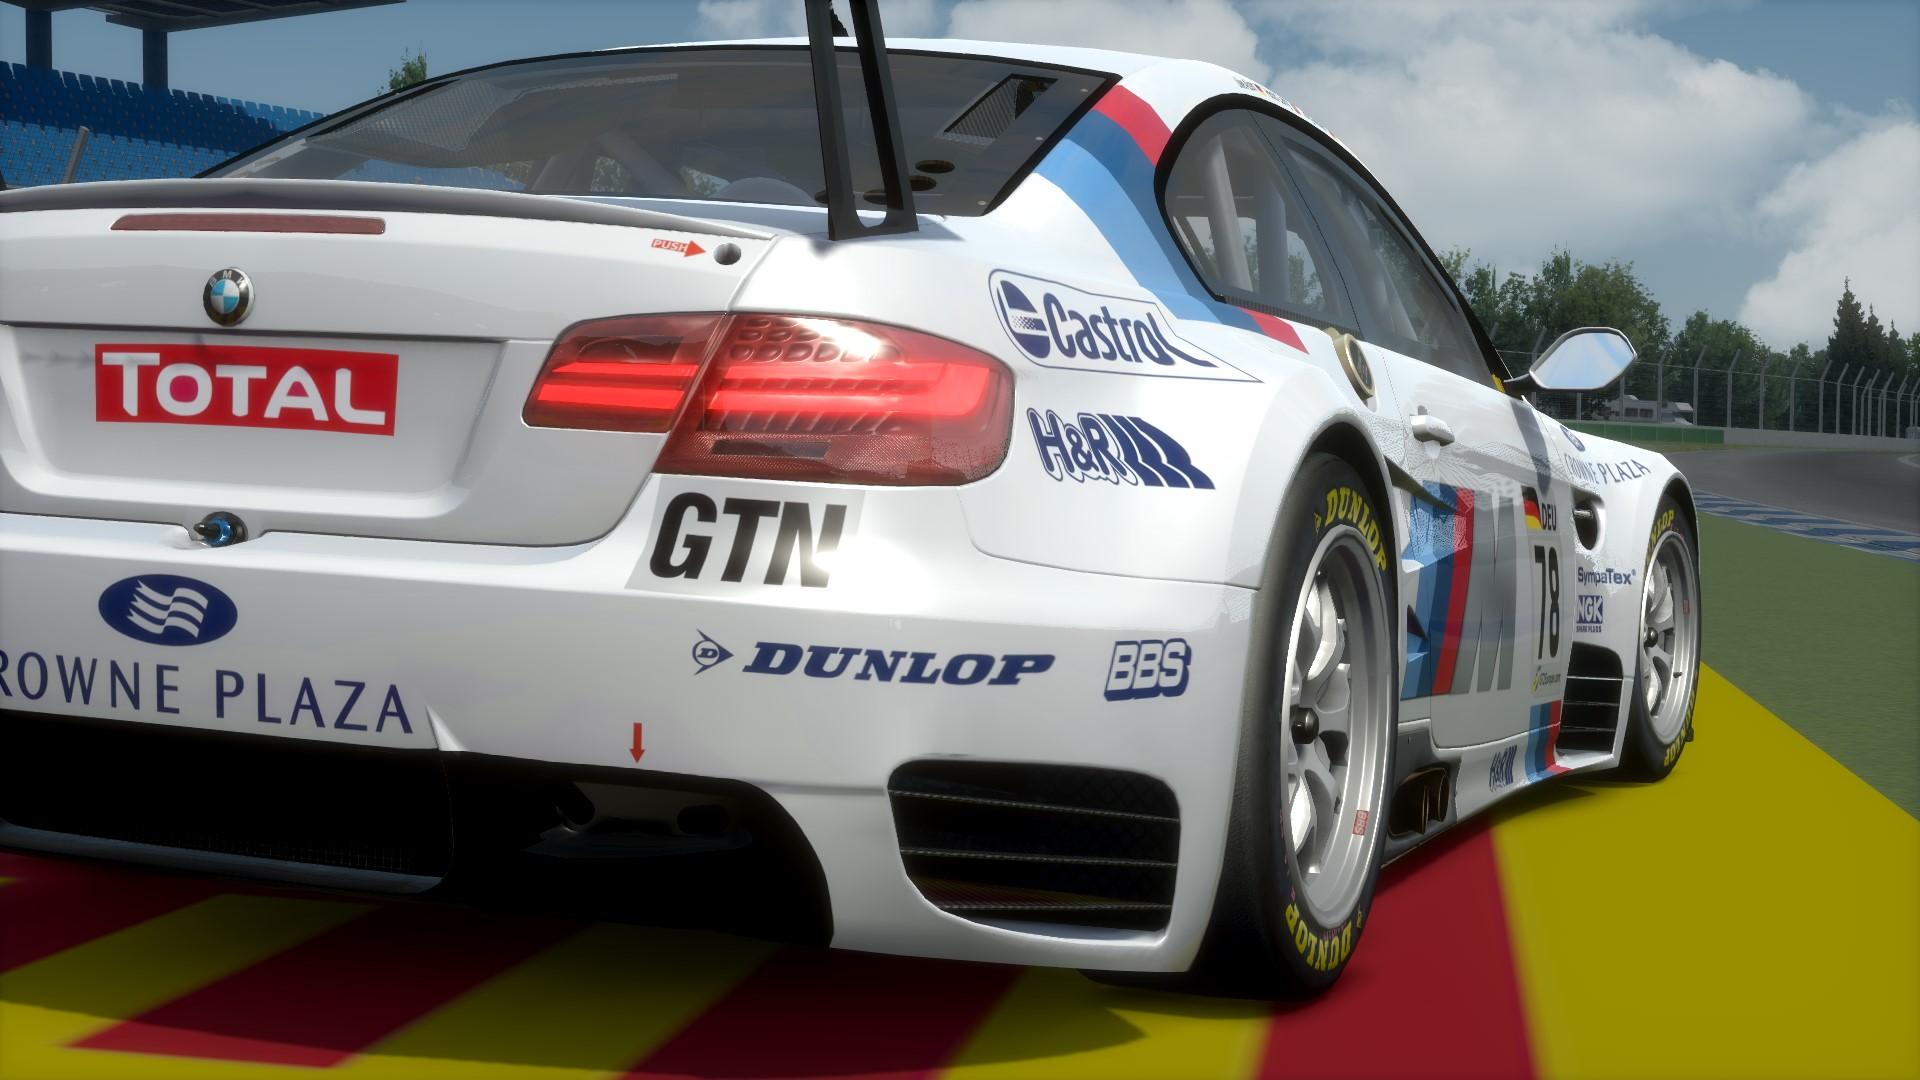 Screenshot_bmw_m3_gt2_hockenheimring_5-12-2014-15-10-52.jpg